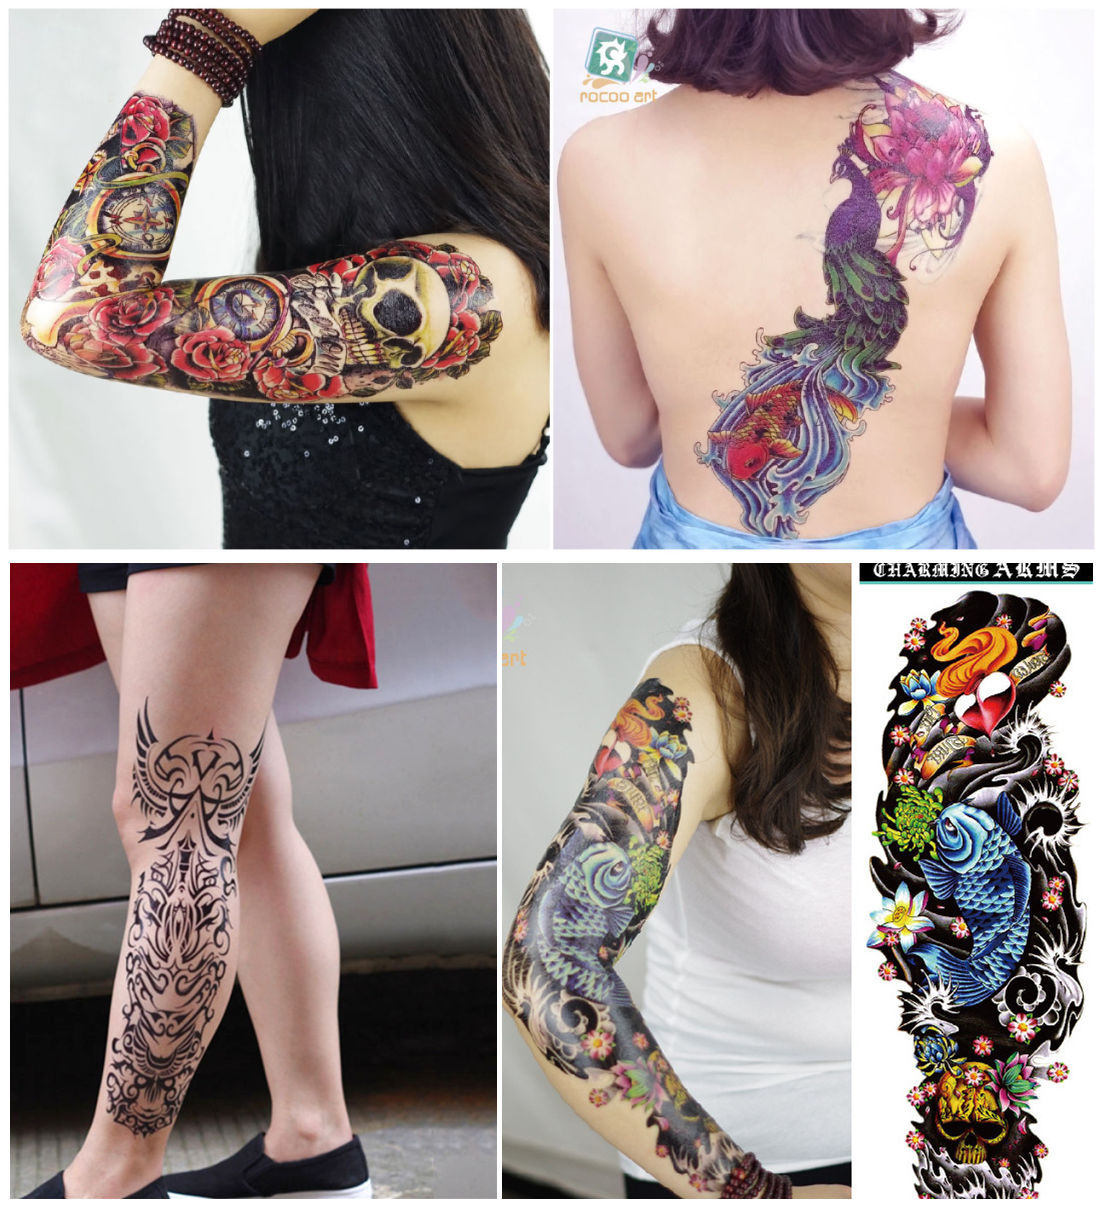 17 new fashion 48 X 15CM cool body art waterproof men and women temporary Full arm tattoo (6 design) stickers for boys girls 3